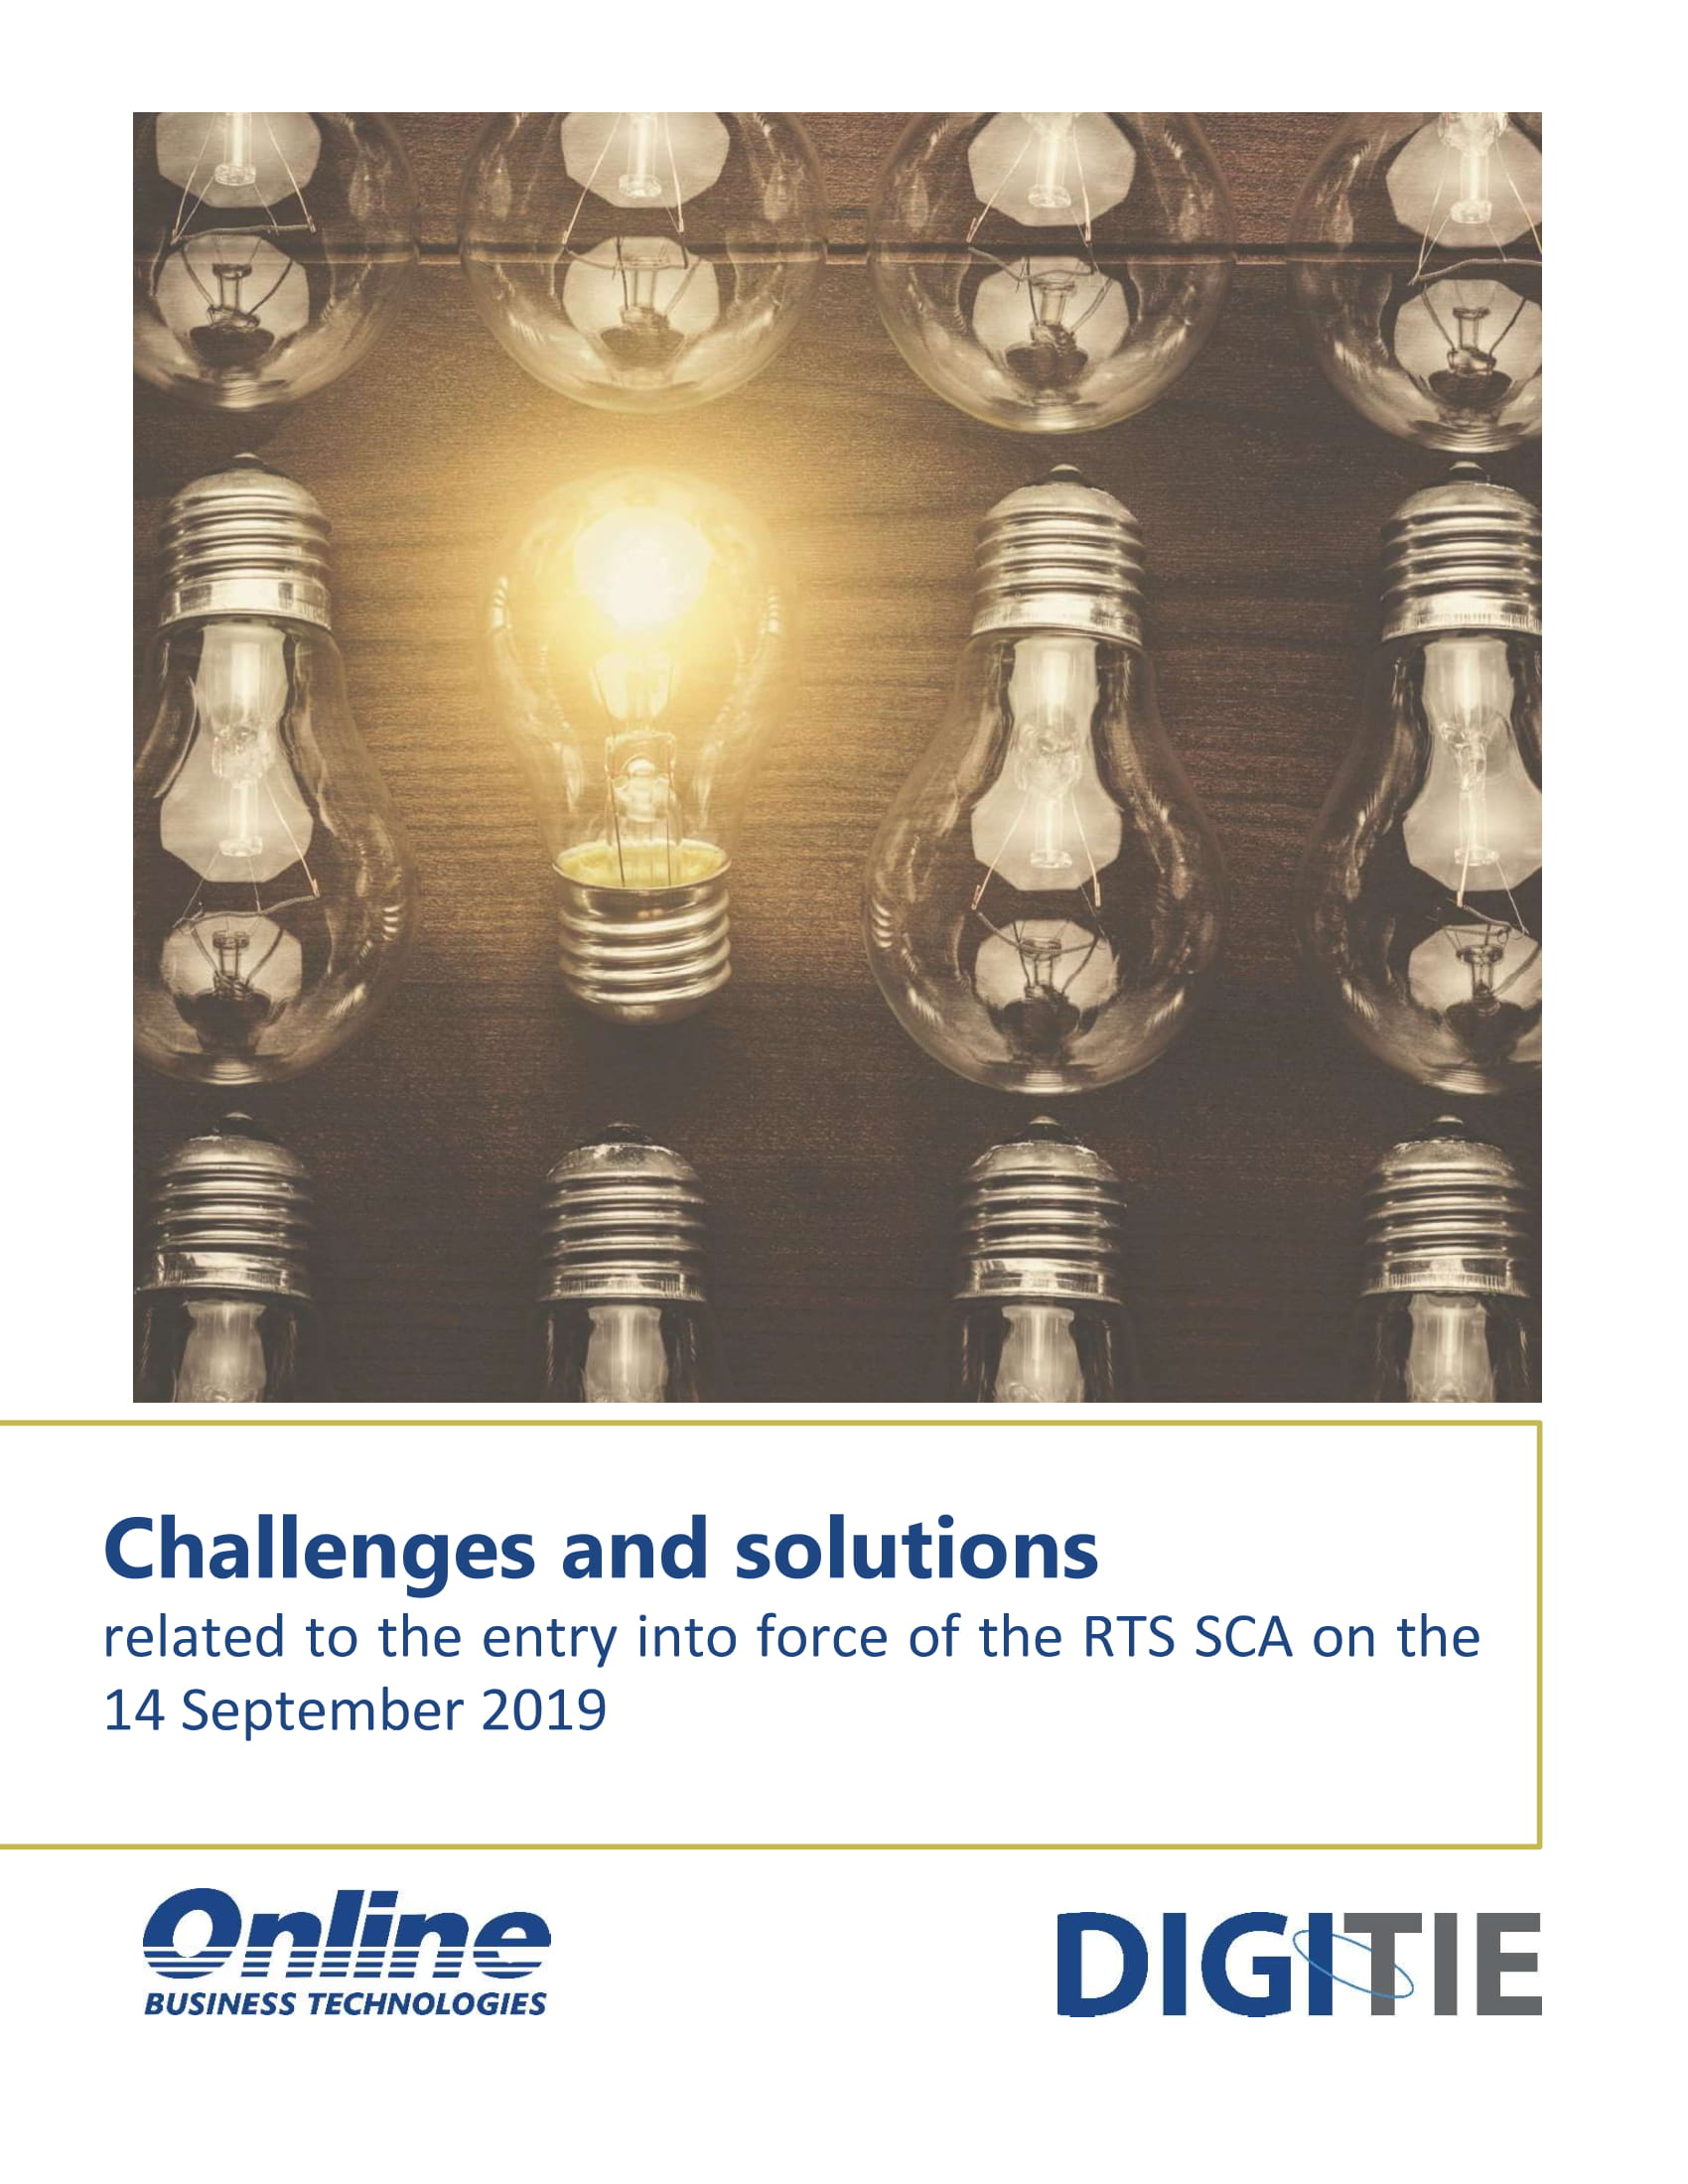 Challenges and solutions for meeting the requirements of RTS SCA